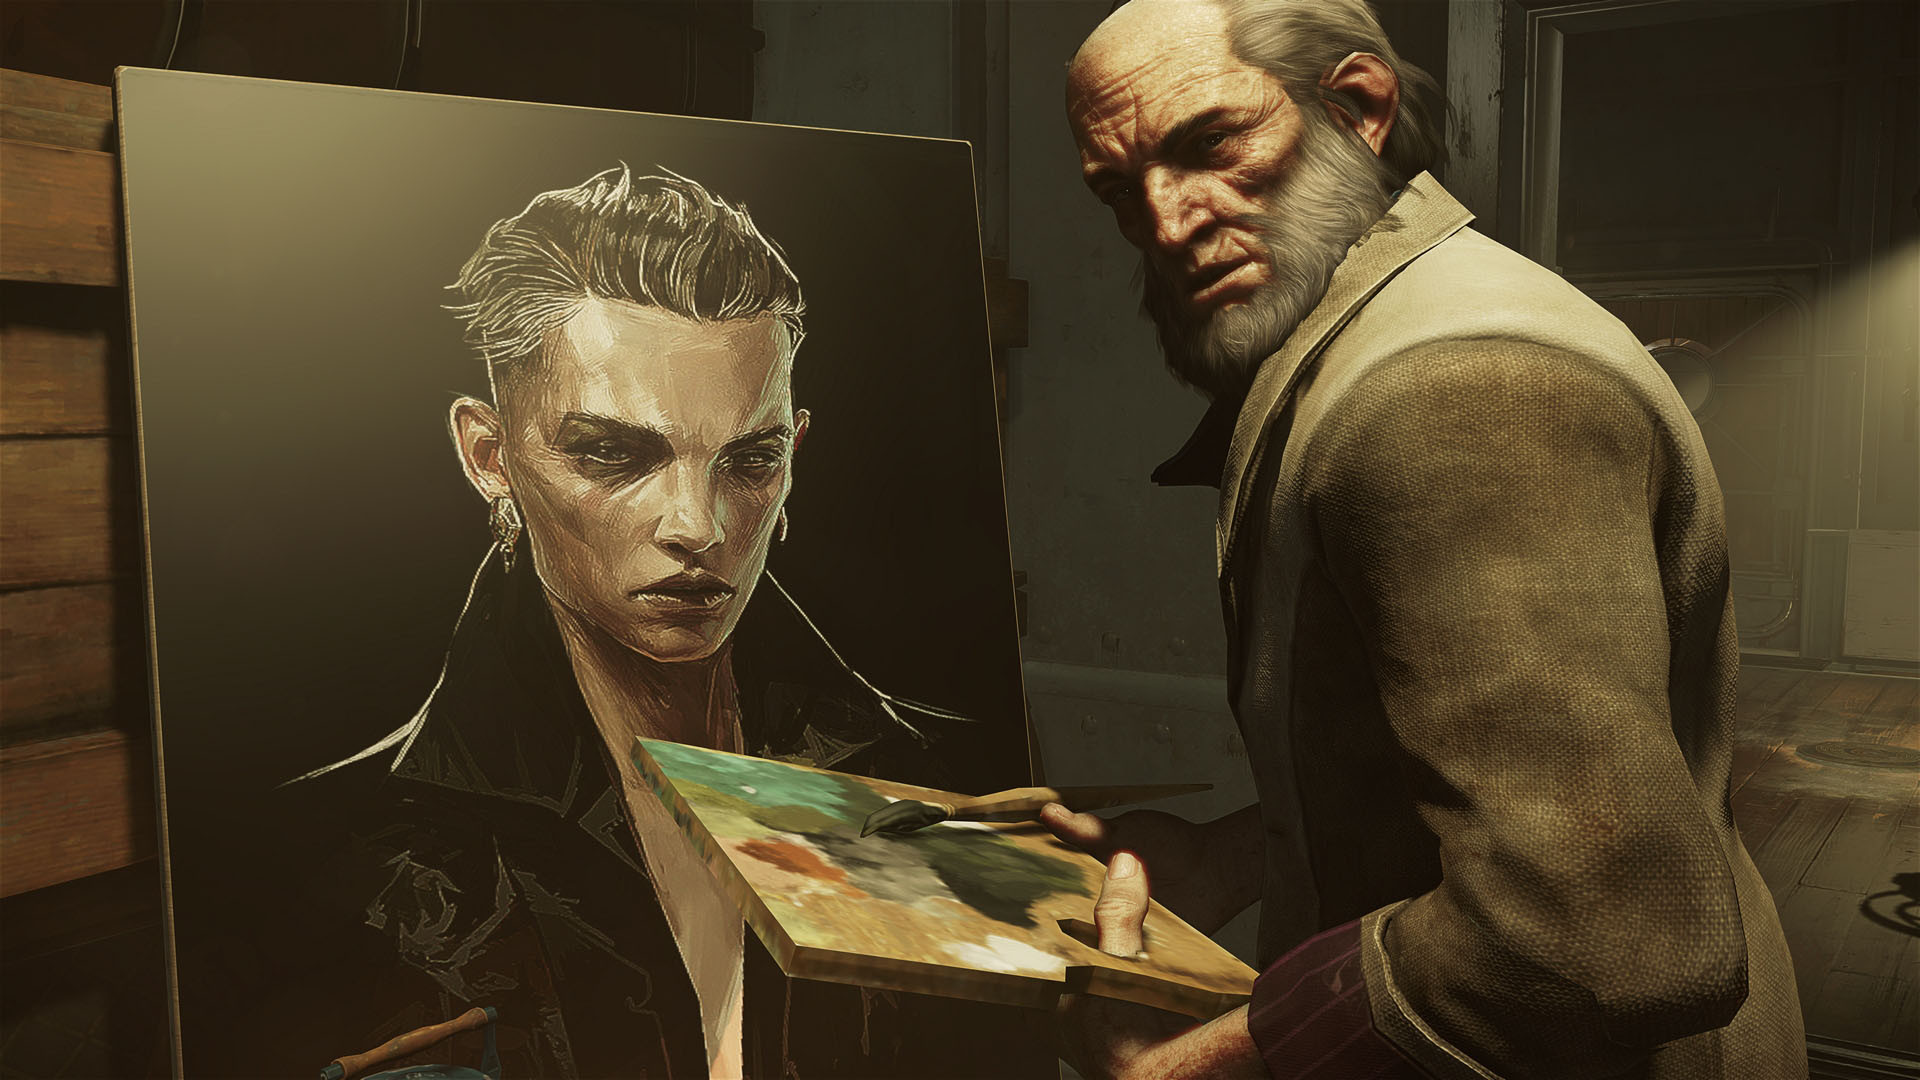 Скриншот *Dishonored 2 [PS4] 5.05 / 6.72 / 7.02 [EUR] (2016) [Русский] (v1.05)*